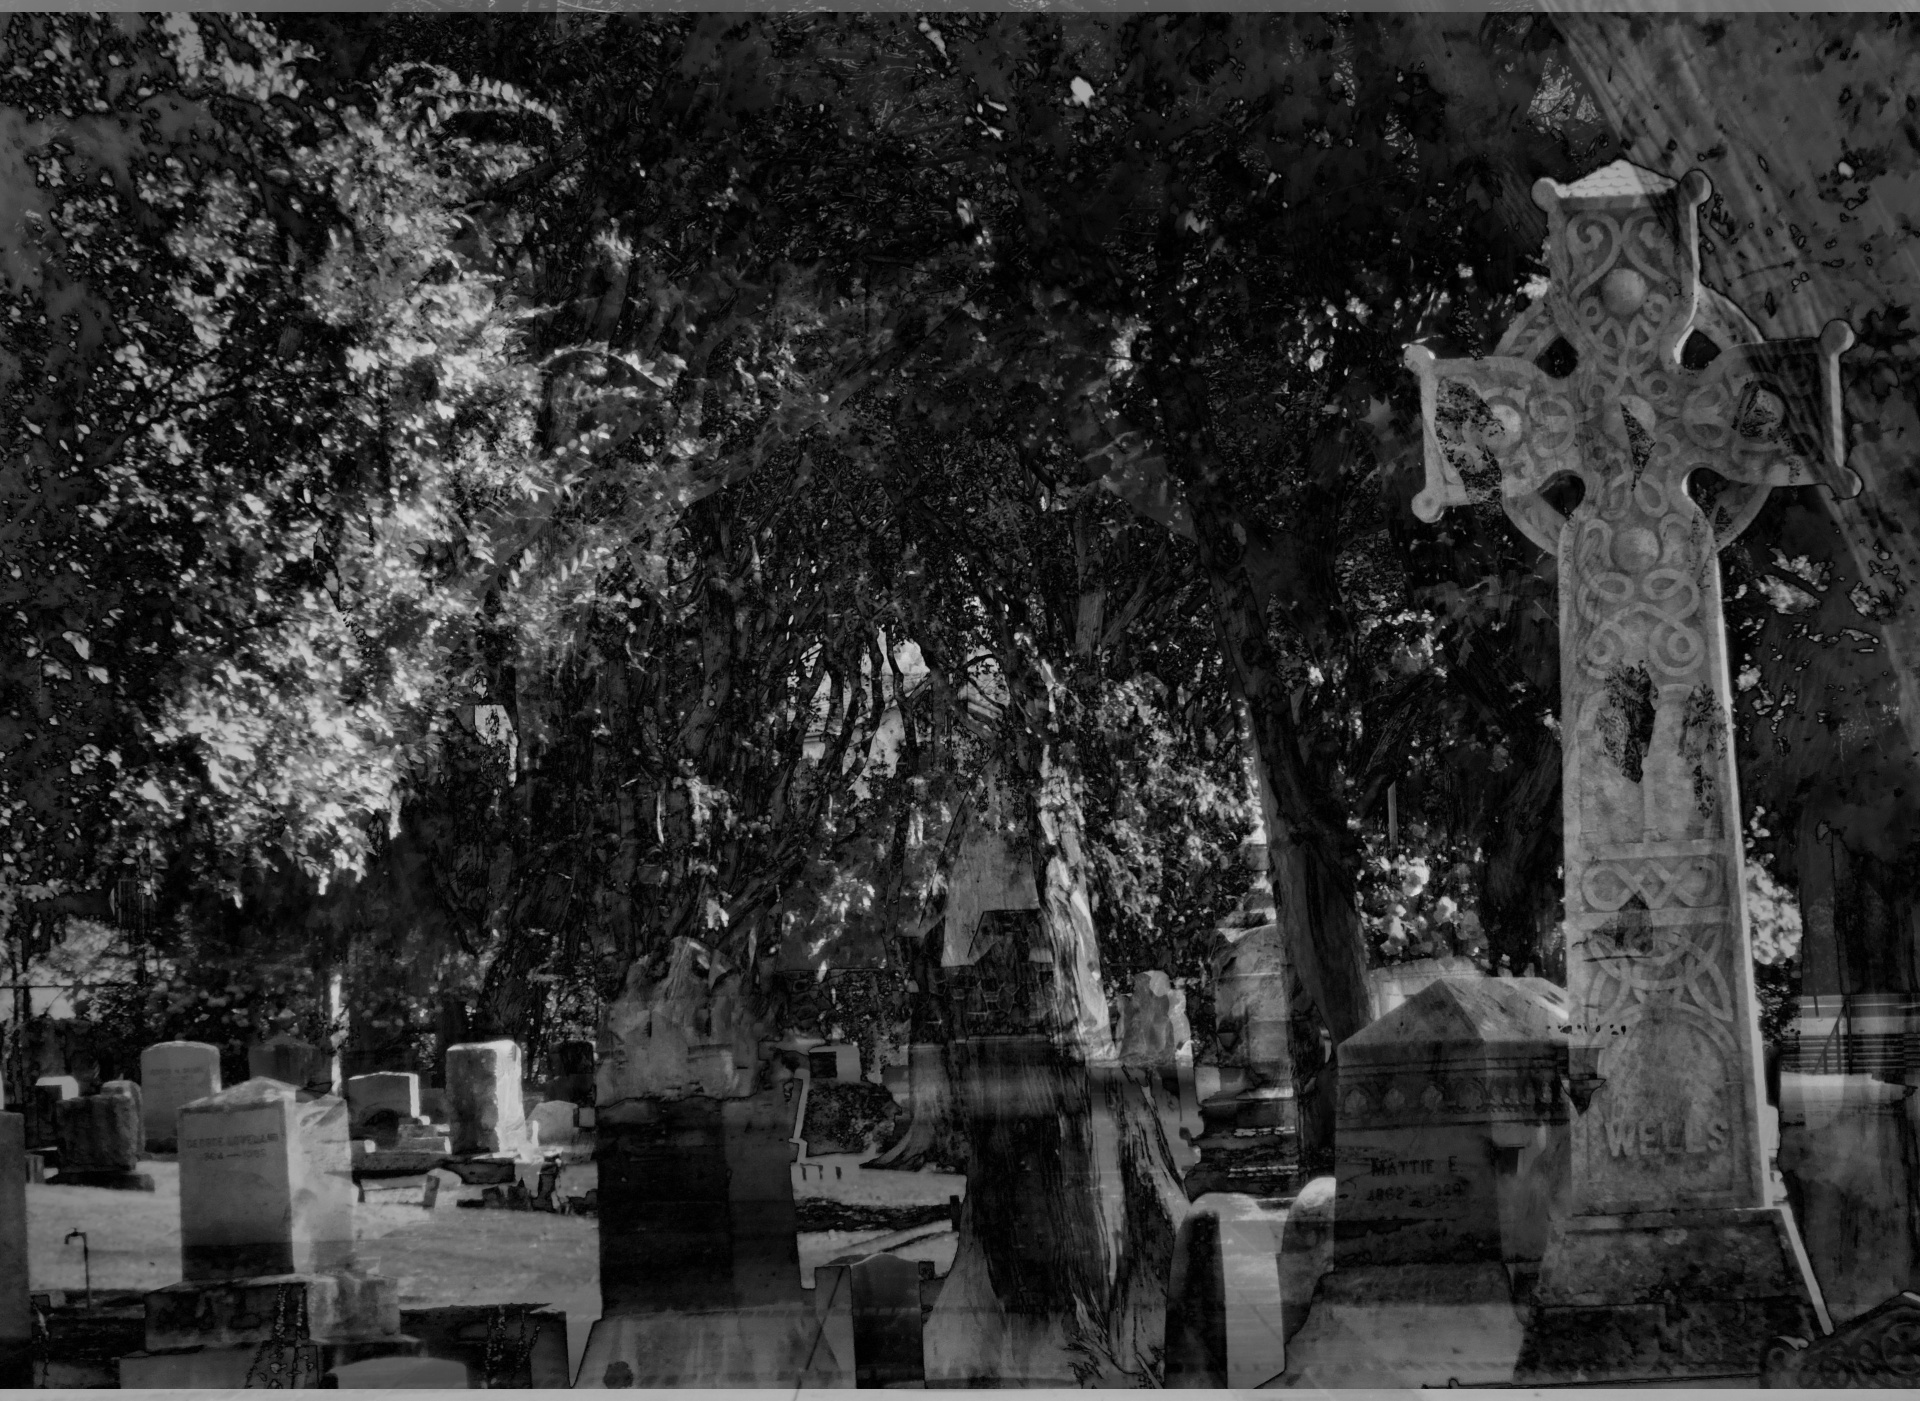 Haunted Graveyard Free Stock Photo - Public Domain Pictures